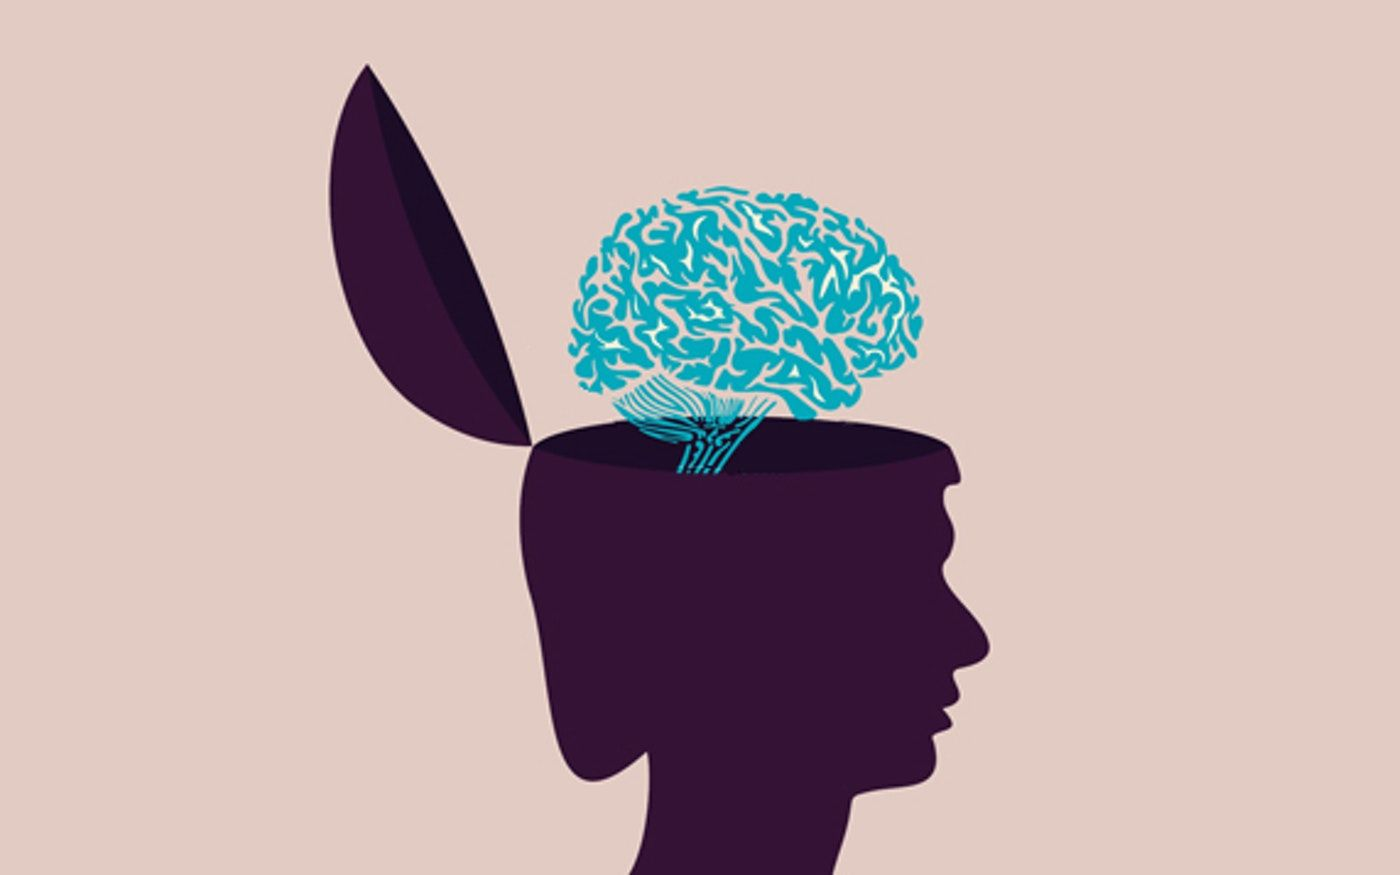 How To Teach Your Kids About The Brain